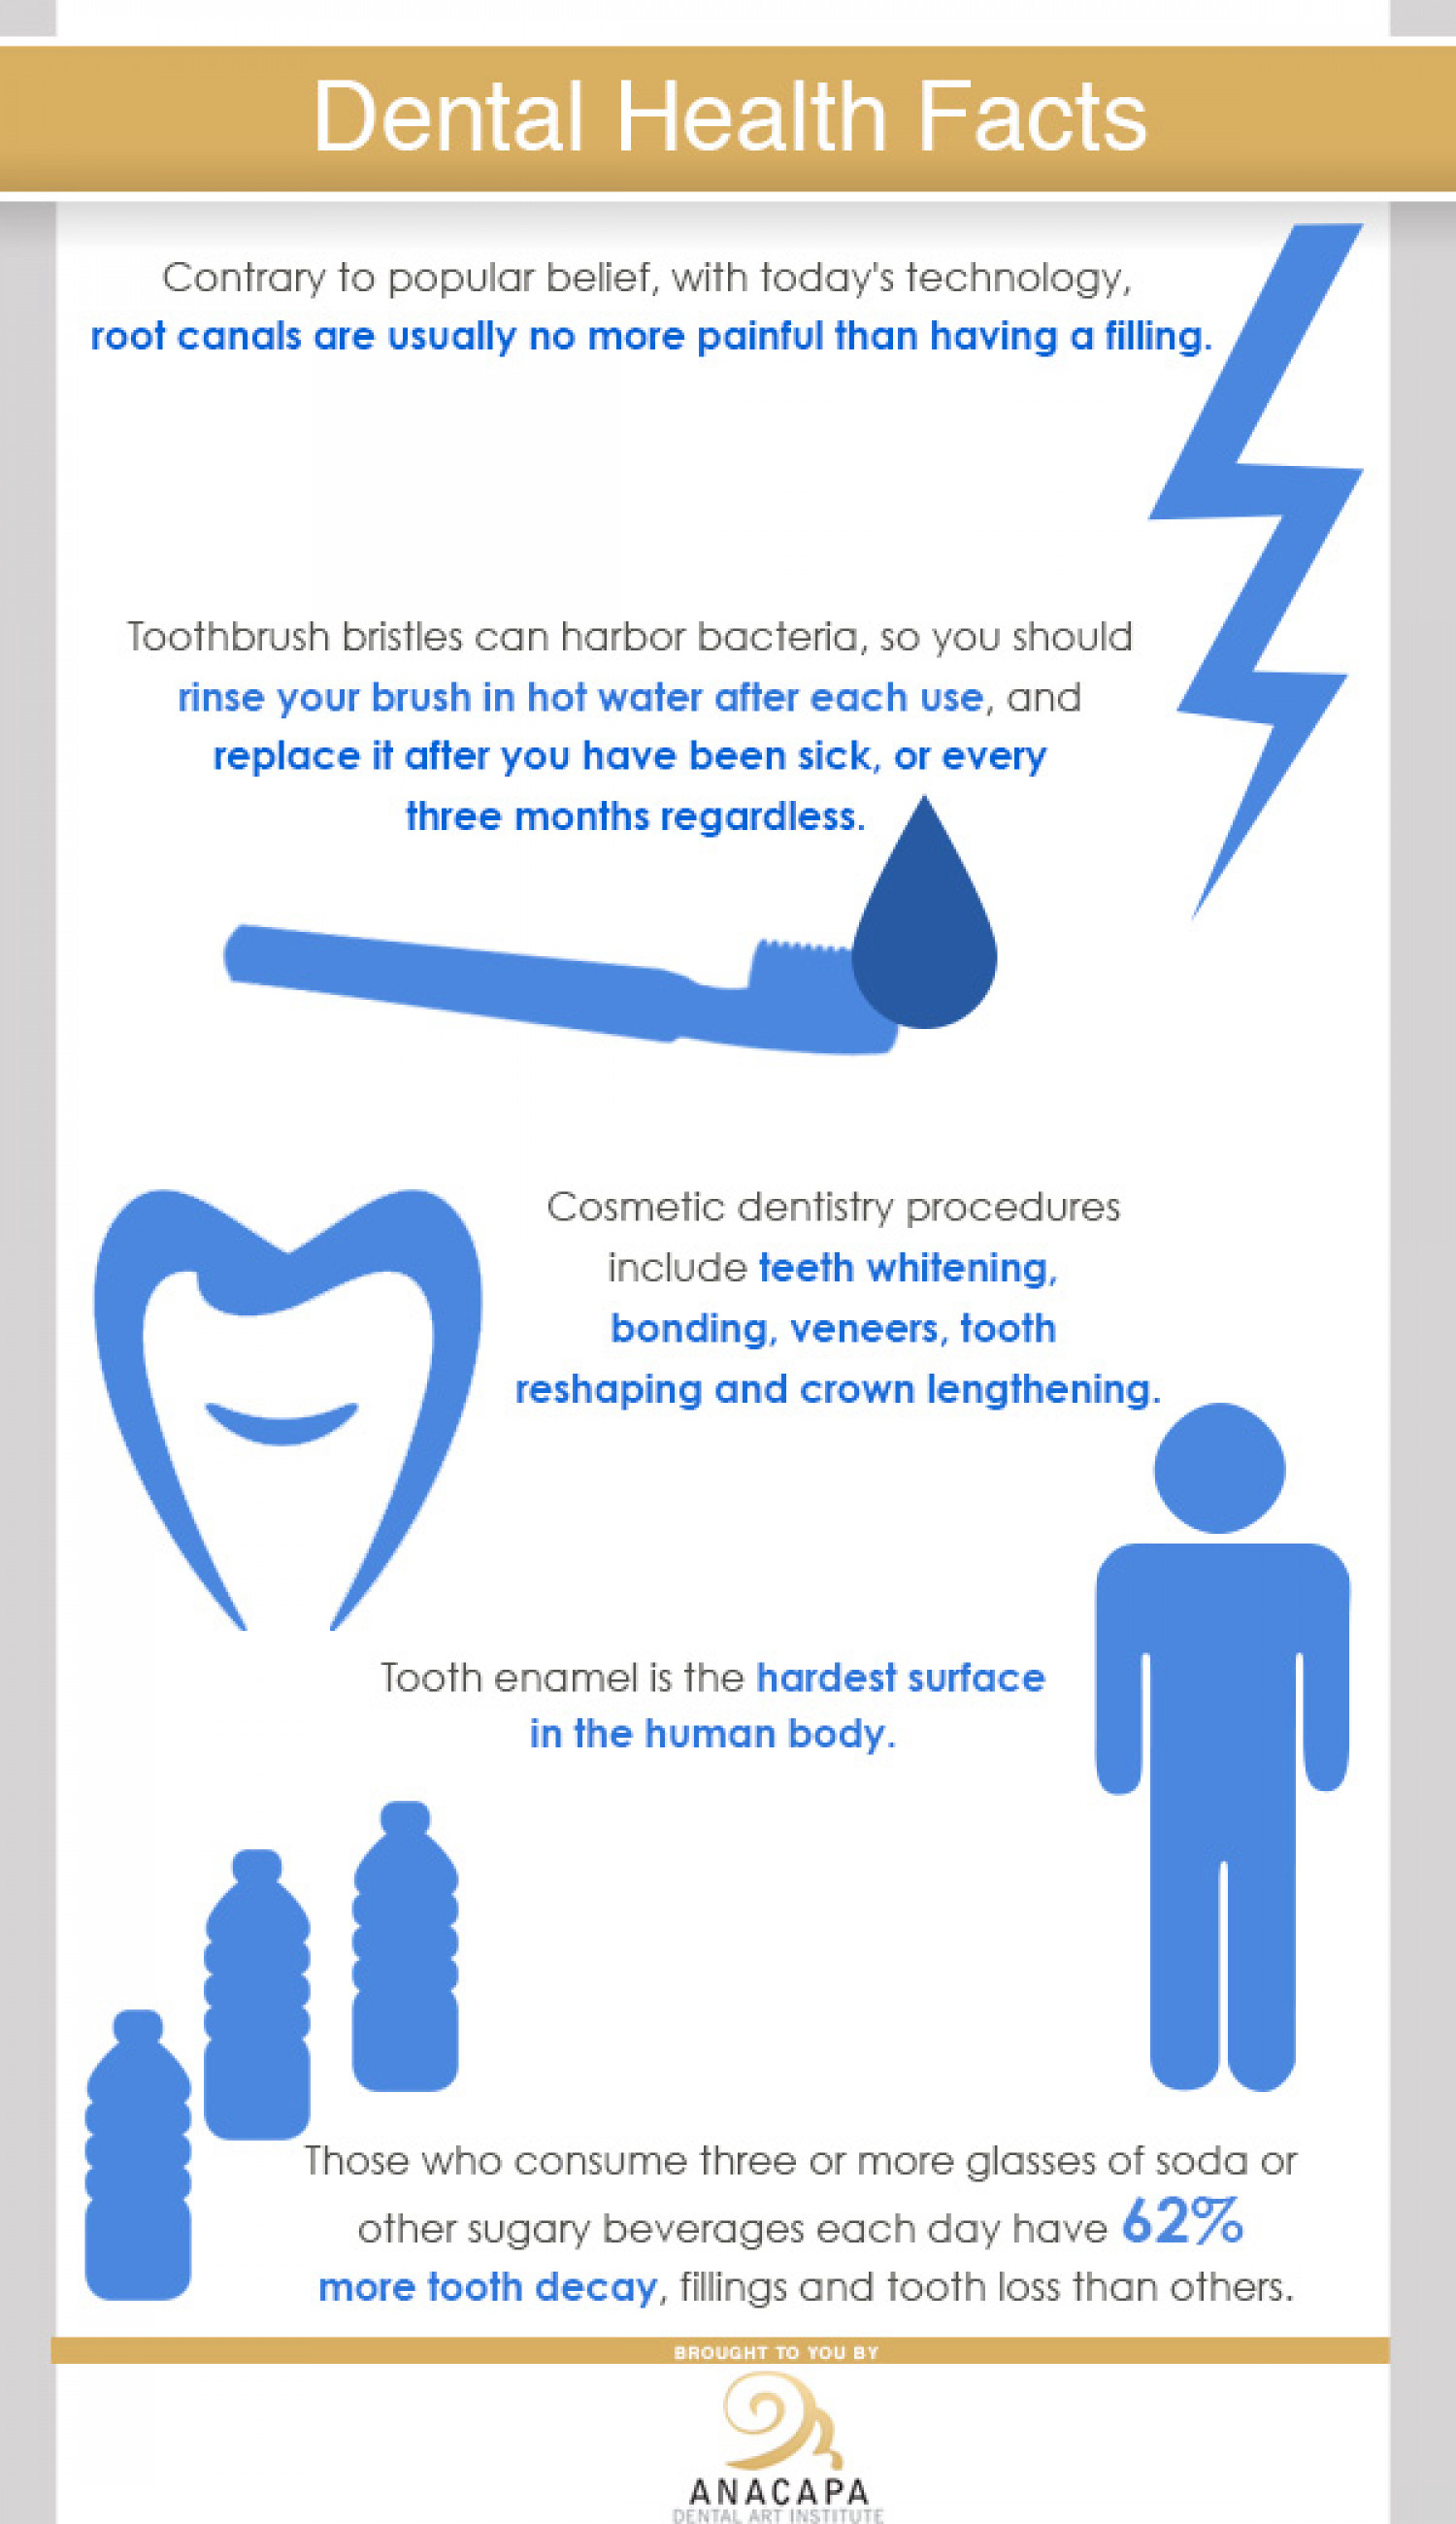 Dental Health Facts Infographic